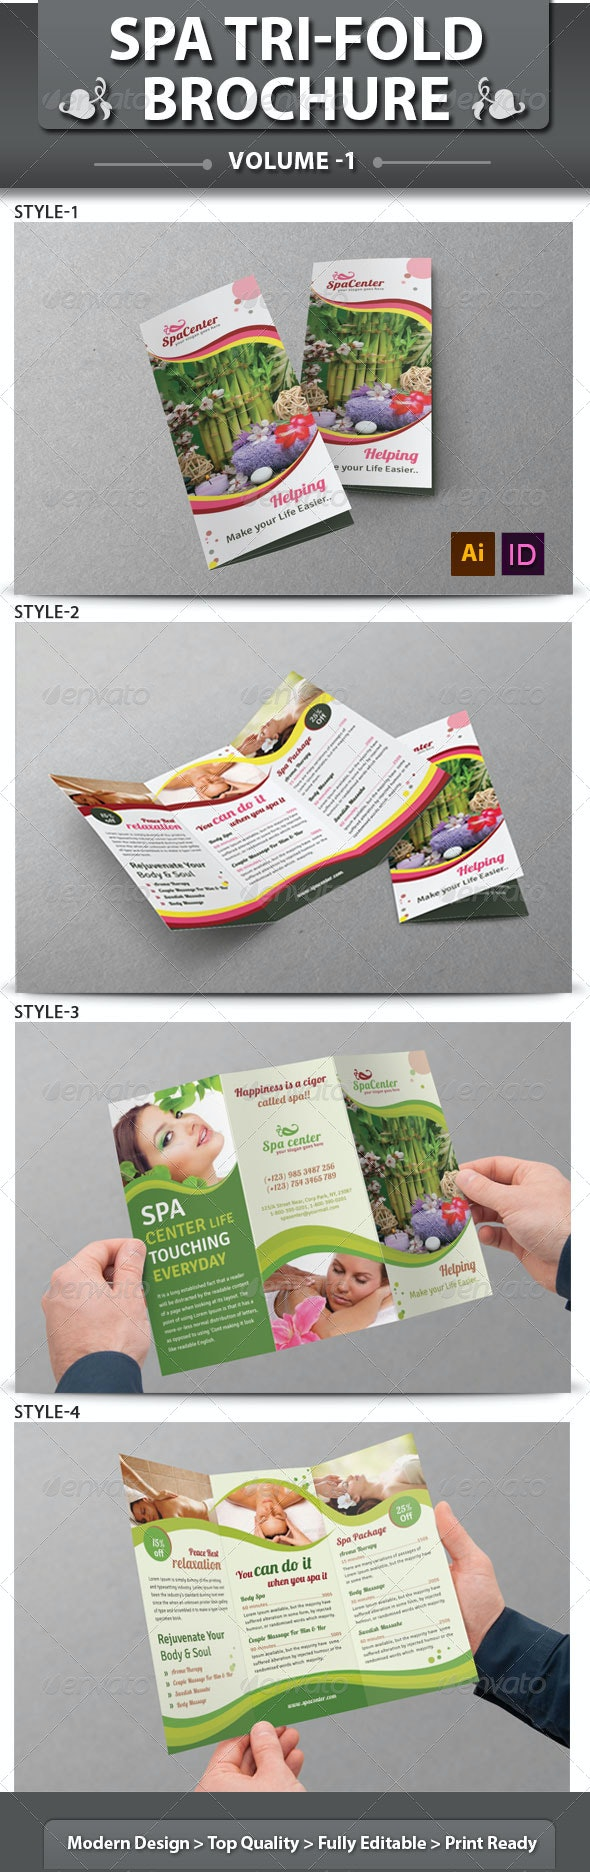 Spa & Beauty Saloon Tri-fold Brochure | Volume 14 - Corporate Brochures